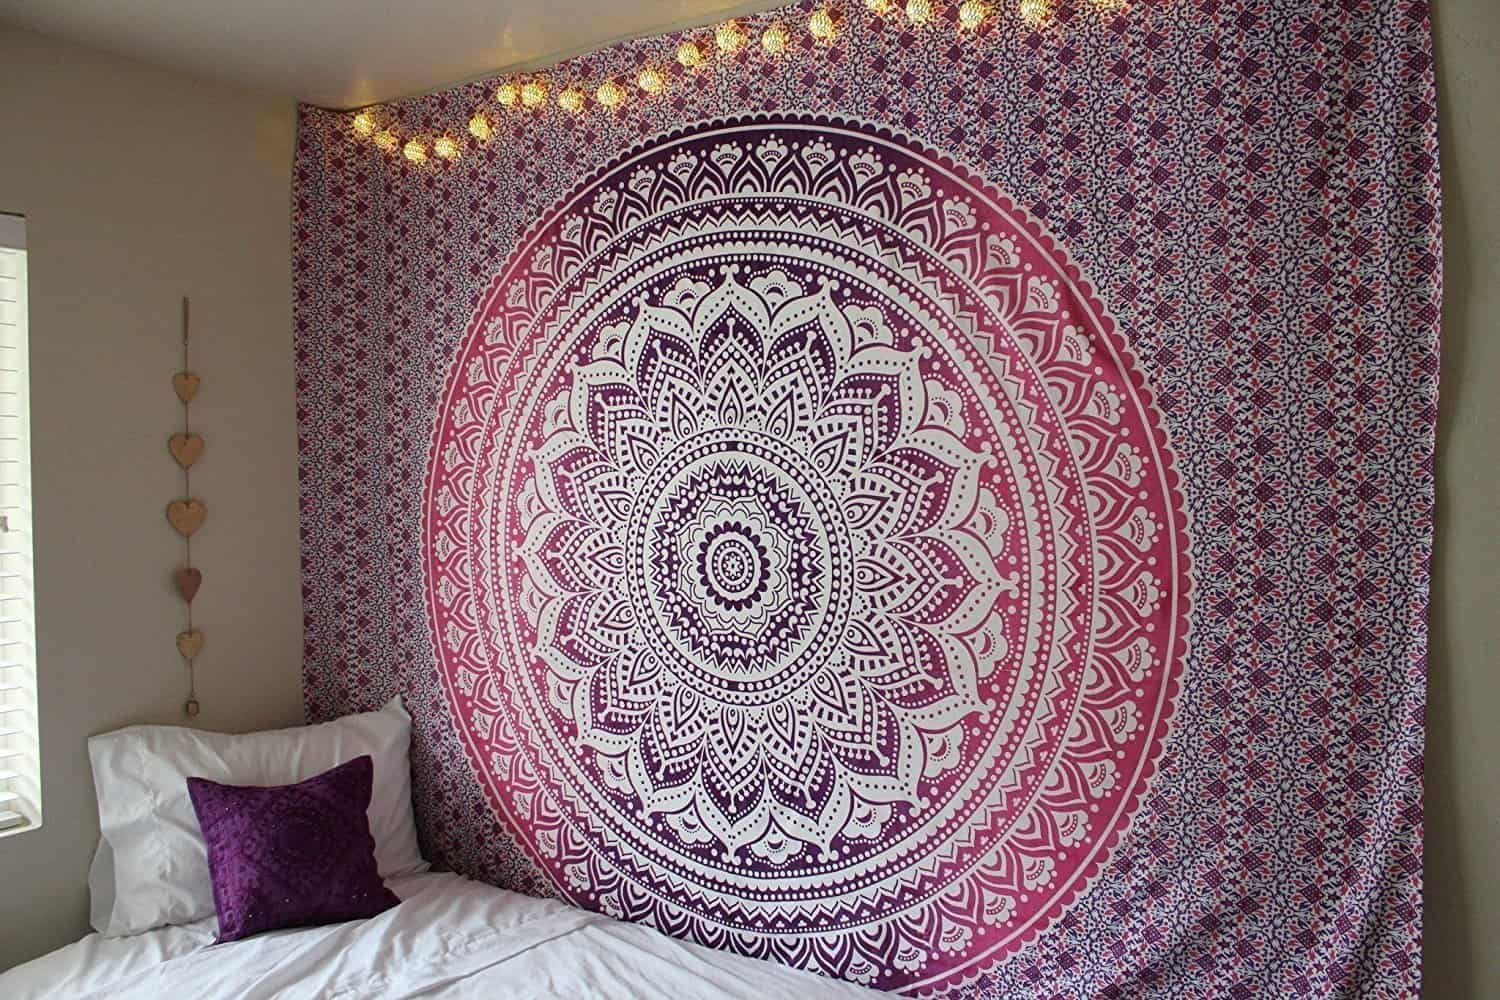 boho tapestry wall covering in bedroom